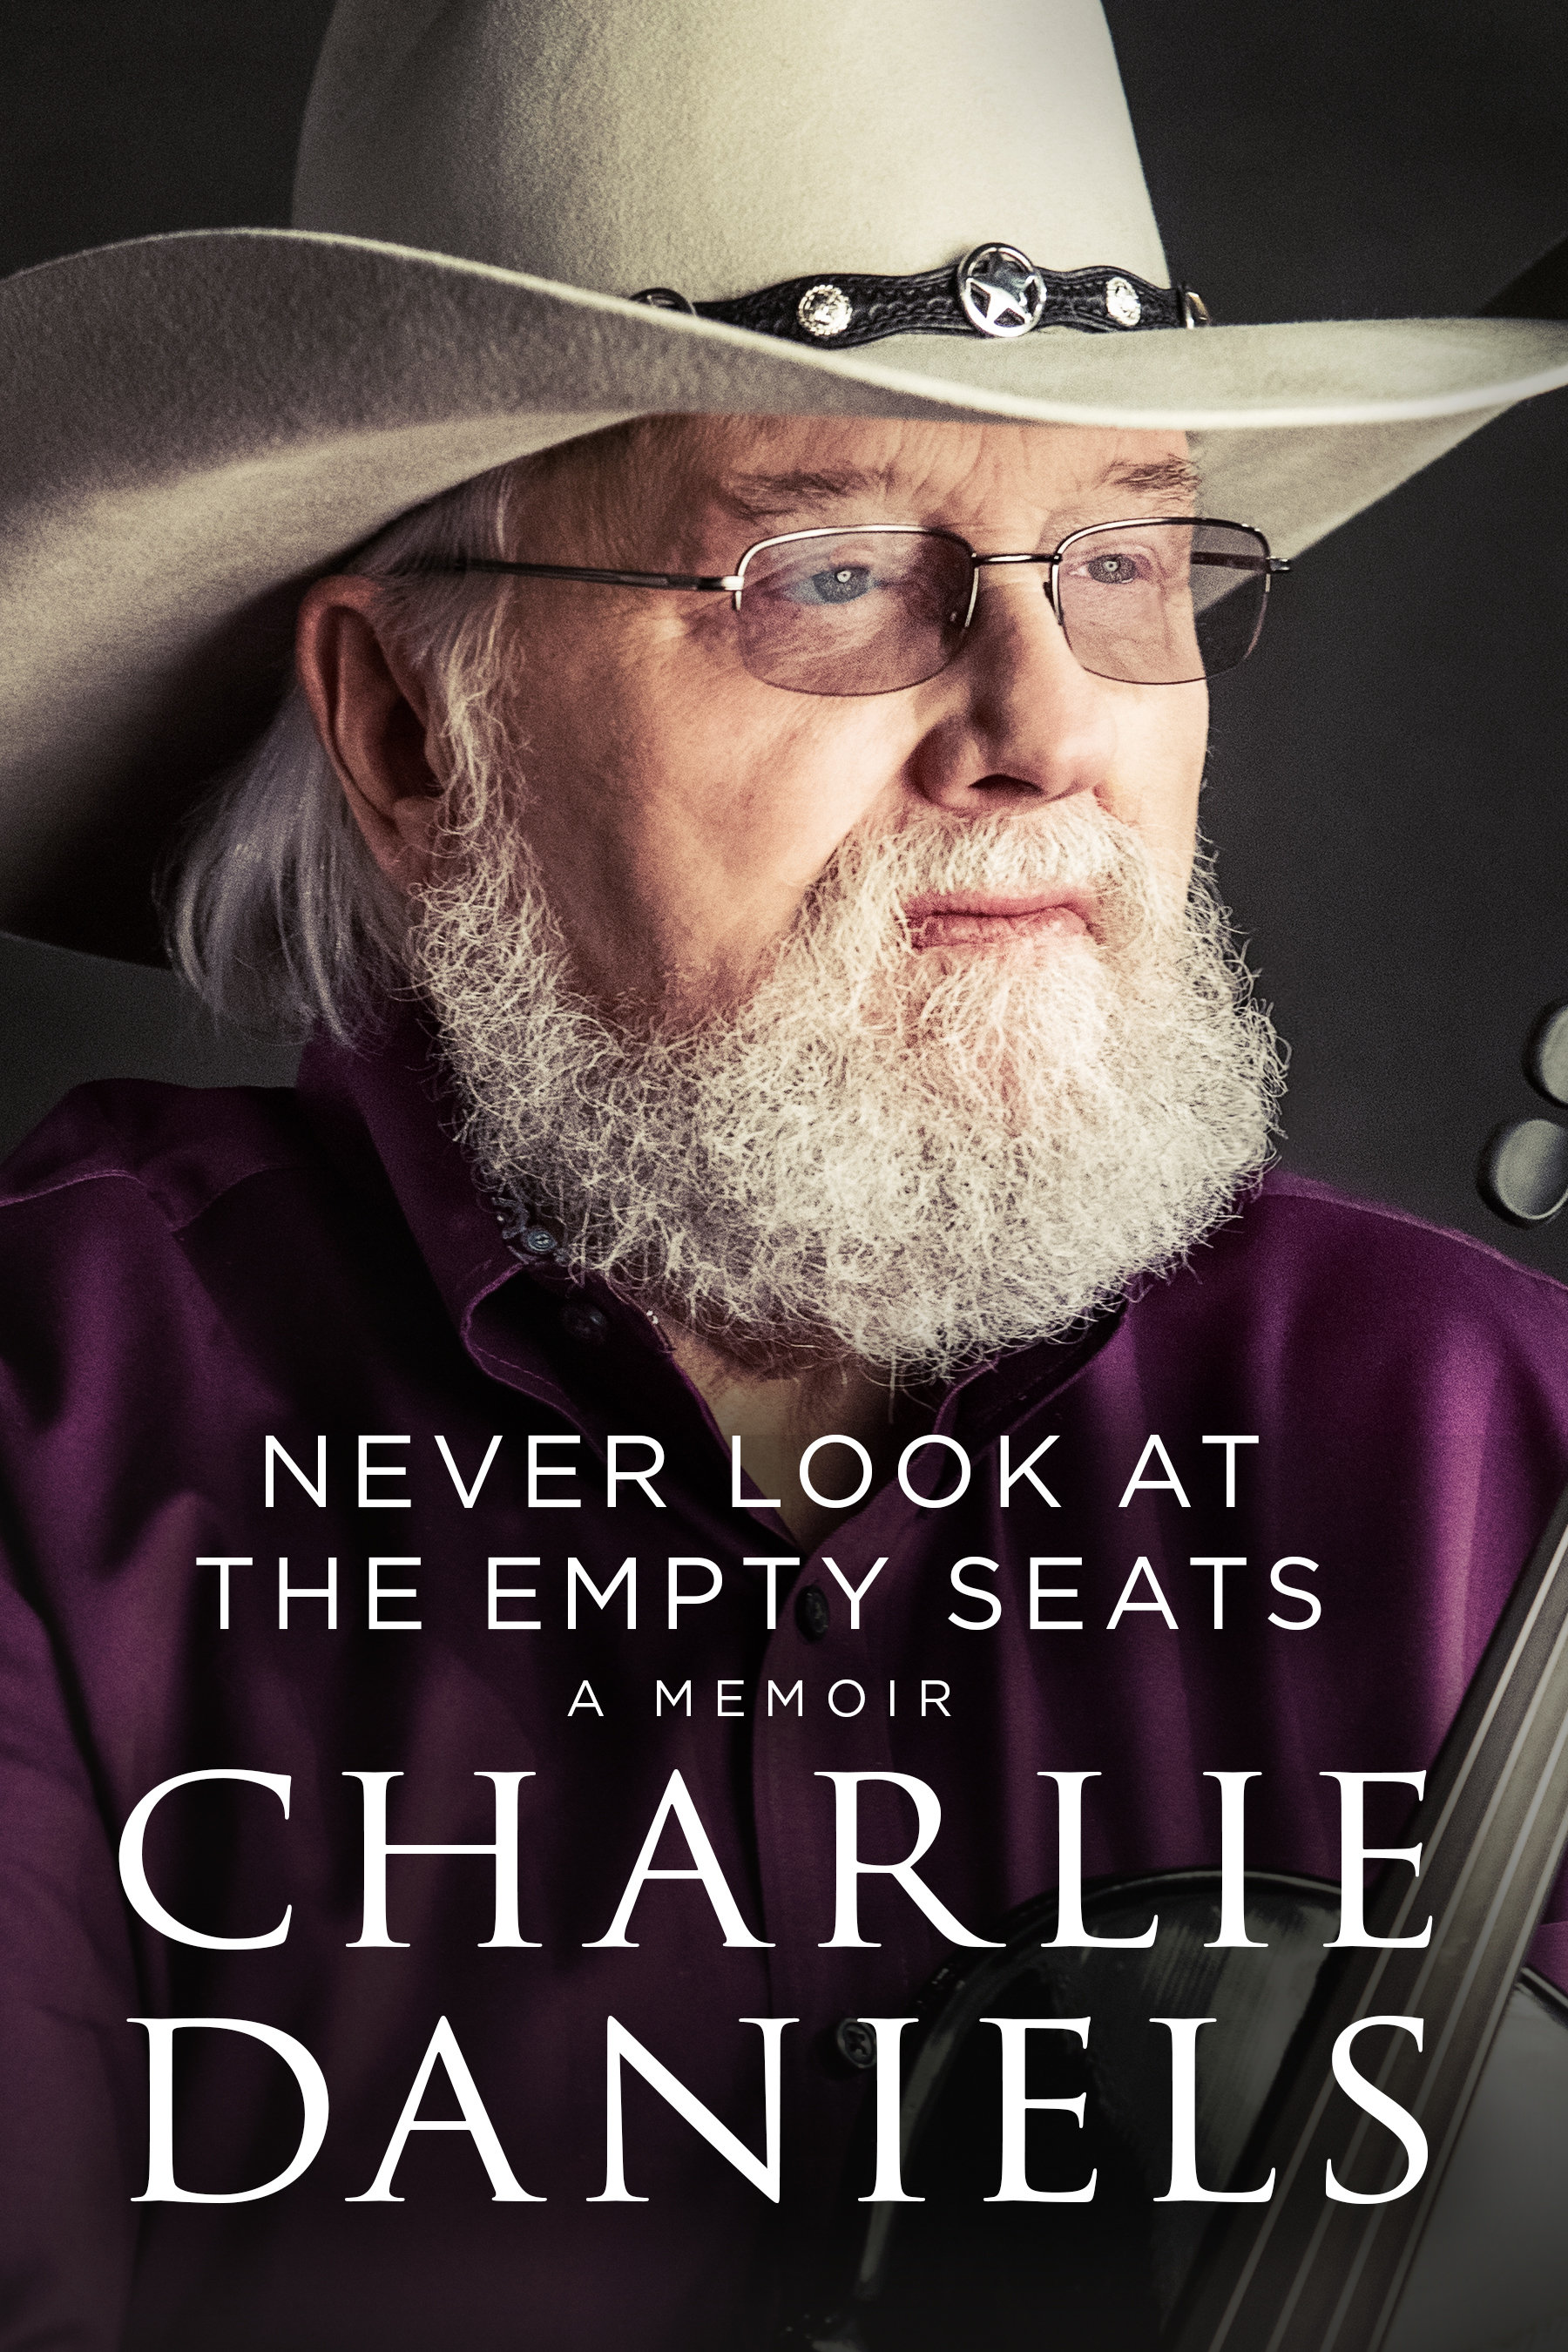 Charlie Daniels to appear on FOX & Friends, 700 Club, SiriusXM, Access Hollywood, AOL Build, HANNITY, Varney & Co., CMT, GAC, RFD & more